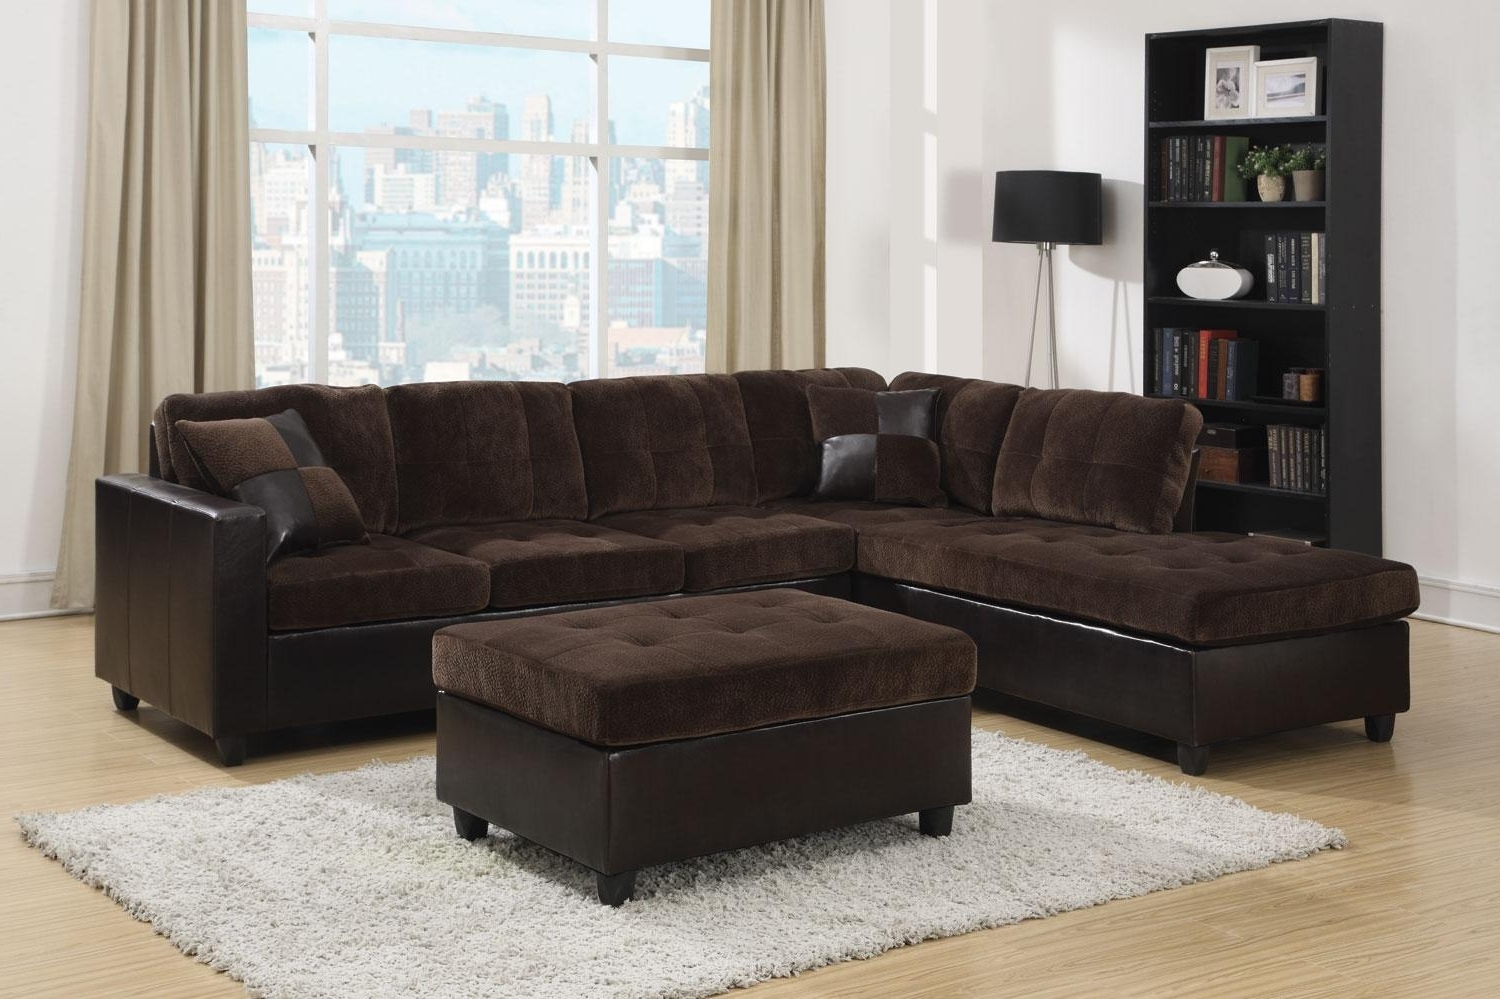 Ivan Smith Sectional Sofas (View 2 of 15)